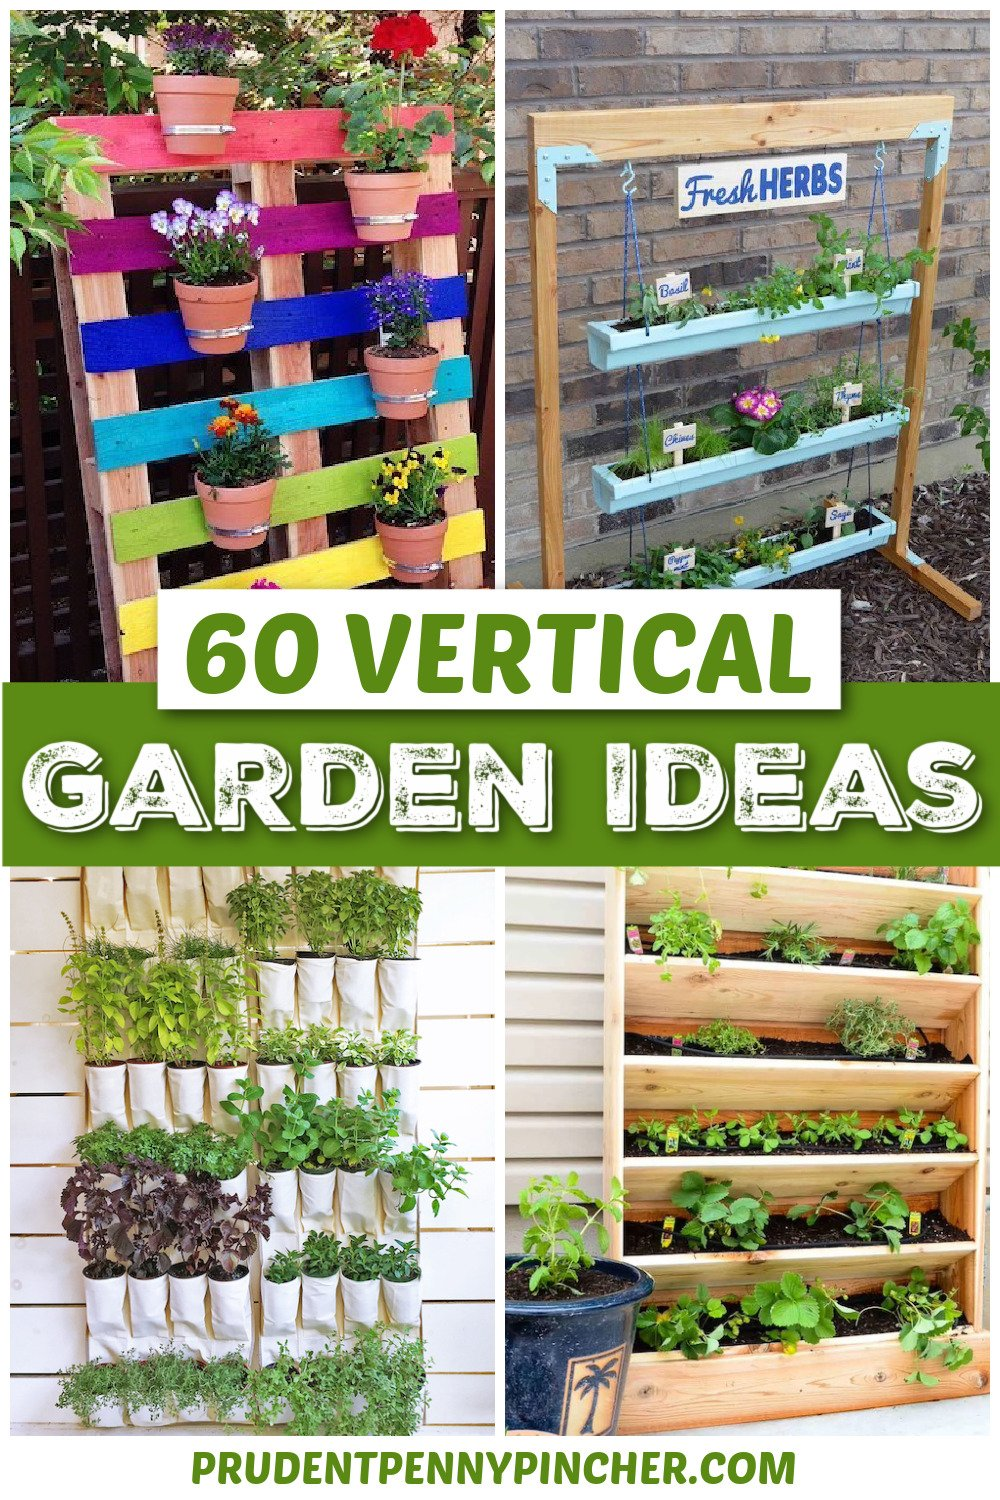 20 DIY Vertical Garden Ideas for Small Spaces   Prudent Penny Pincher